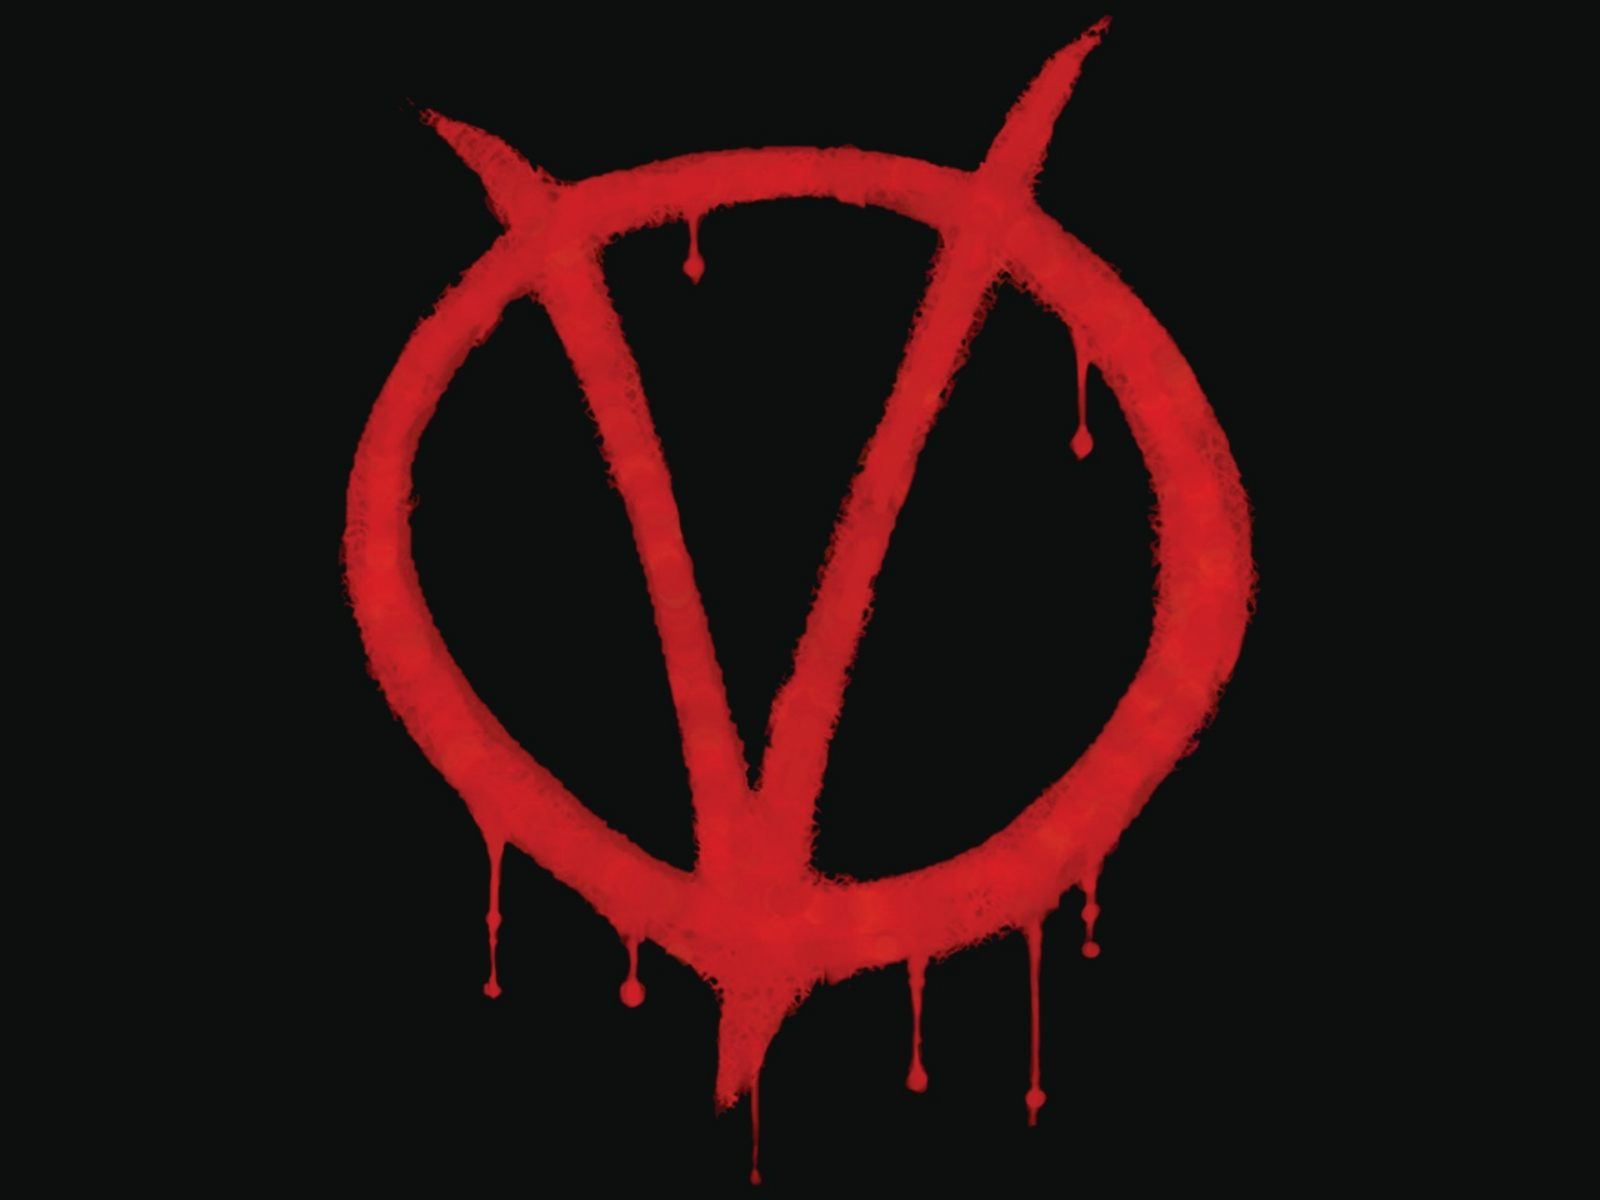 v for vendetta theme 10 years later, 'v for vendetta' is one of the millennium's most influential action which offers an opportunity to appreciate the ways its imagery and themes have.